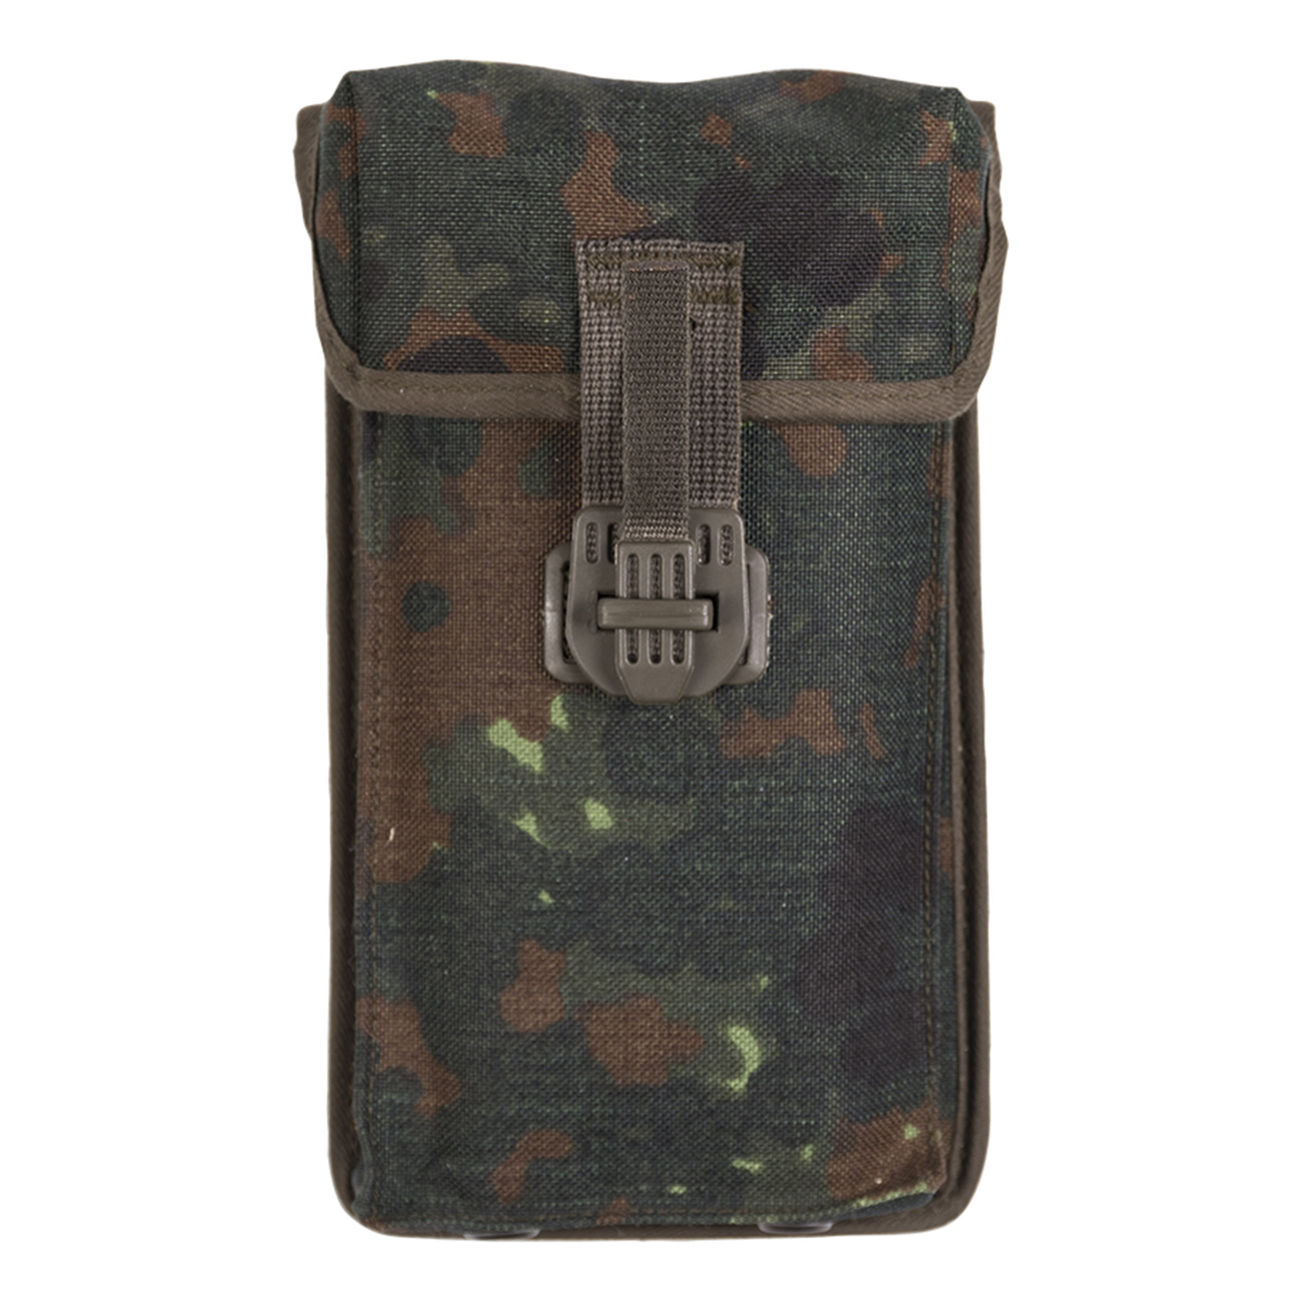 BW Magazintasche MP2 flecktarn 0